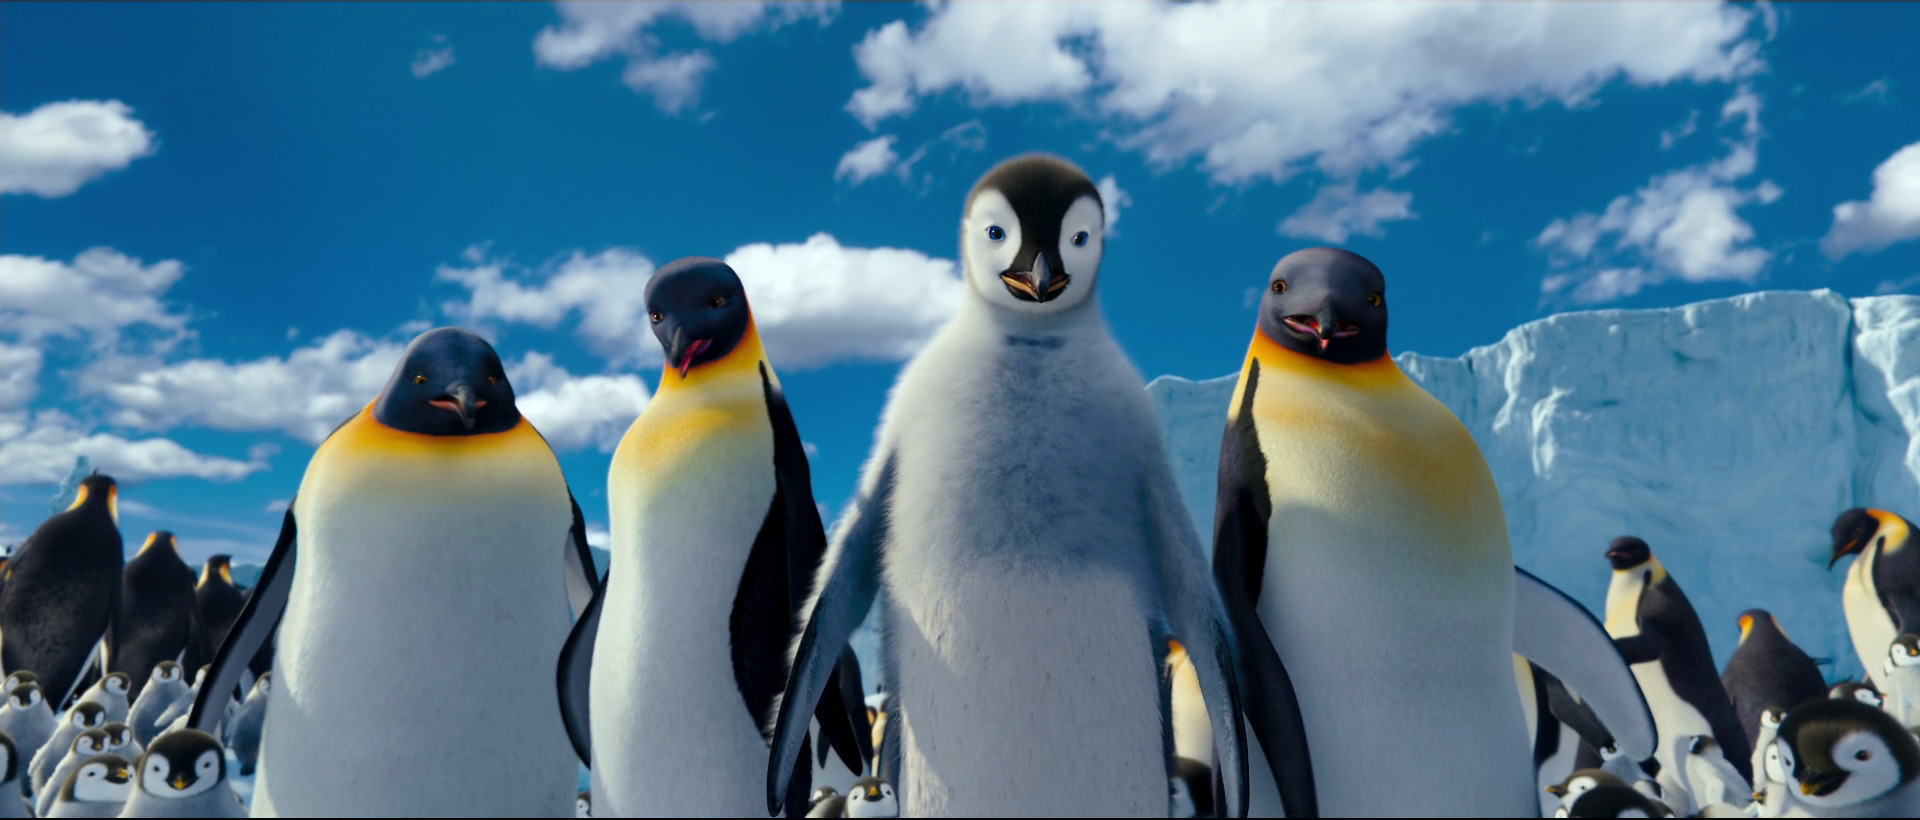 happy feet the movie and how it relates to social psychology The mission of positive psychology is to understand and foster the factors that allow individuals, communities, and societies to flourish (seligman & csikszentmihalyi, 2000)what role do positive emotions play in this mission.